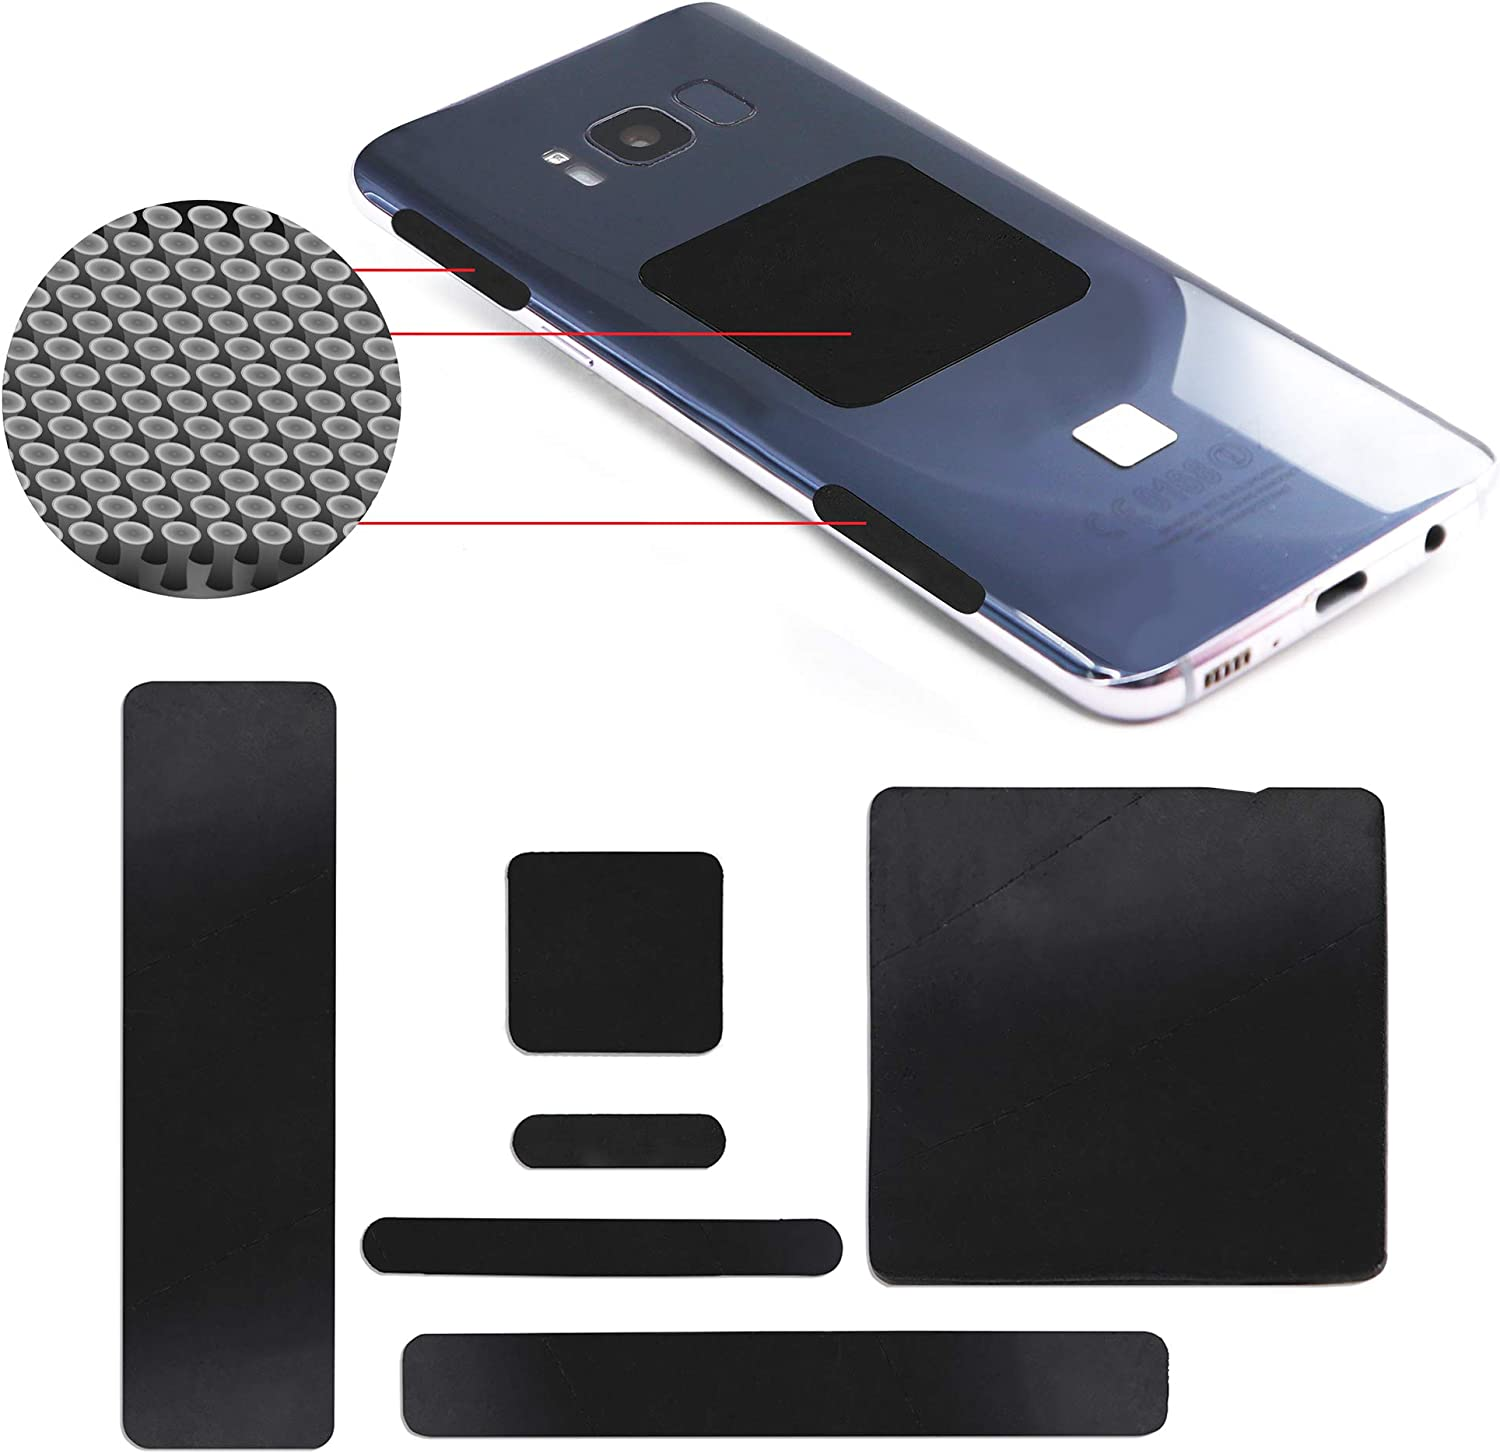 Setex Gecko Grip Anti-Slip Assorted Grip Pads for iPhone, Tablet, Laptop, Camera, Game Controller, Tools, Micro-Structured Fibers, USA Made, 18 Black Pads